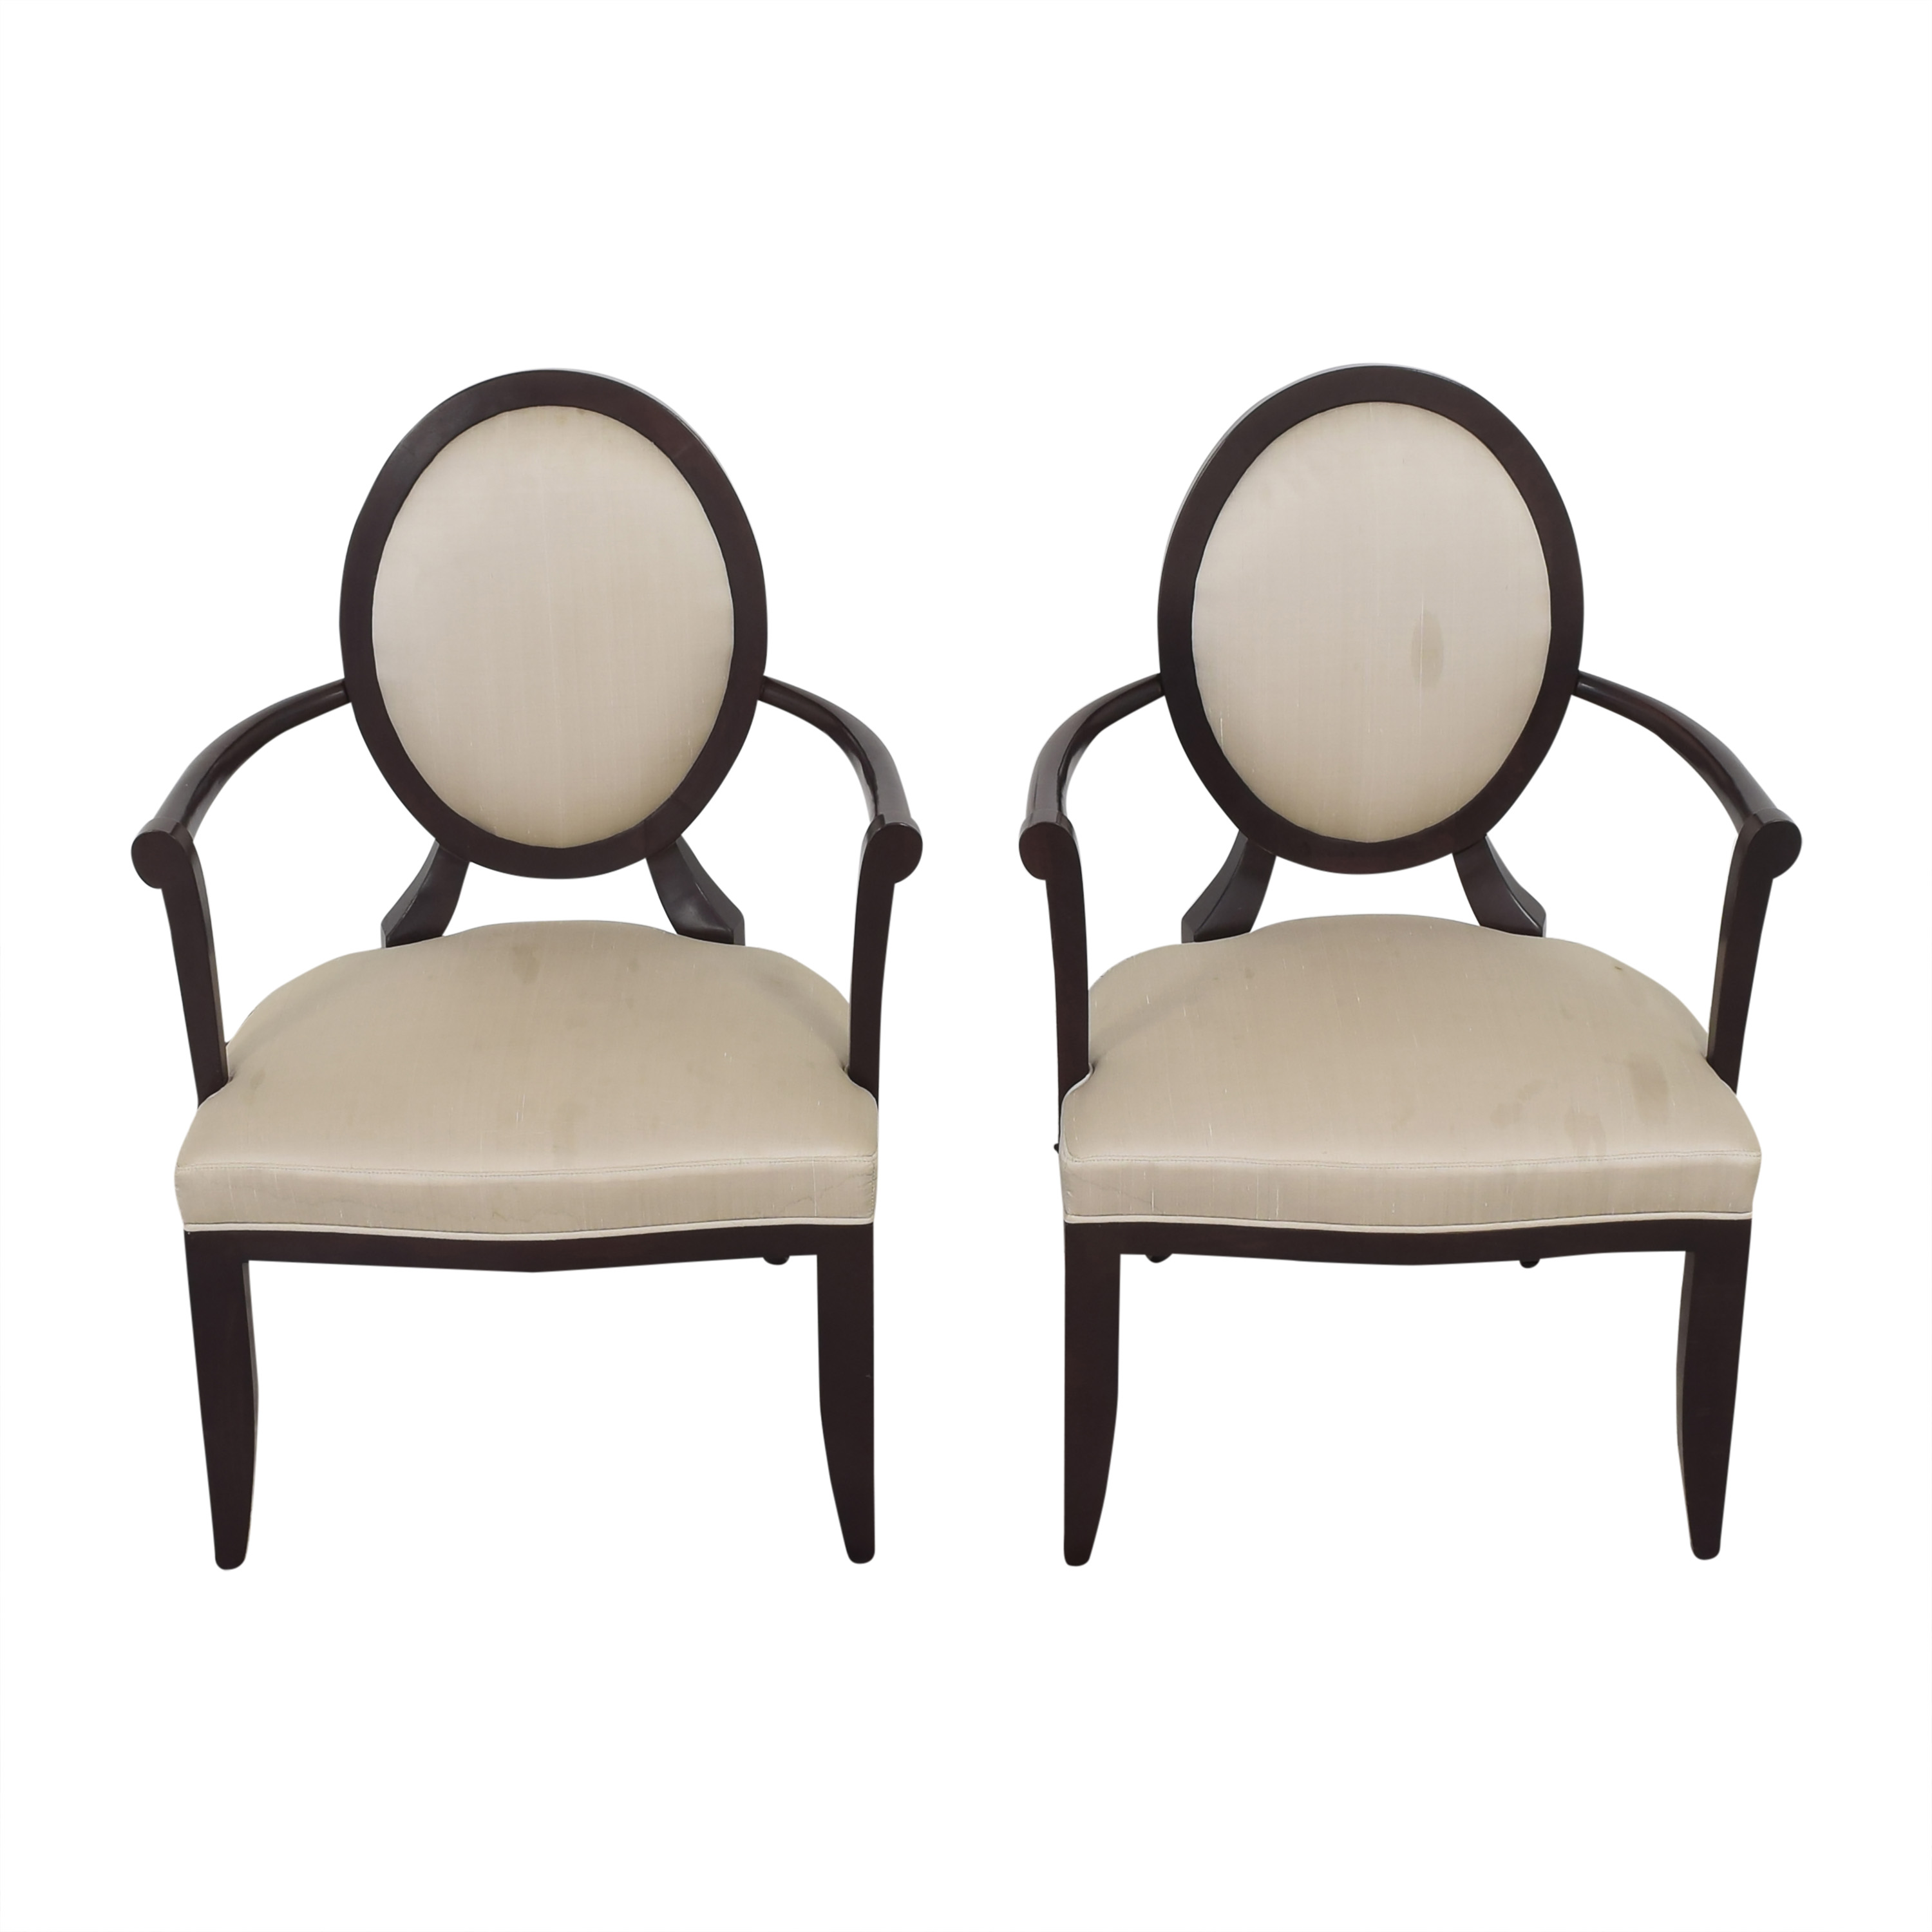 Baker Furniture Baker Furniture Oval X-Back Dining Arm Chairs dimensions